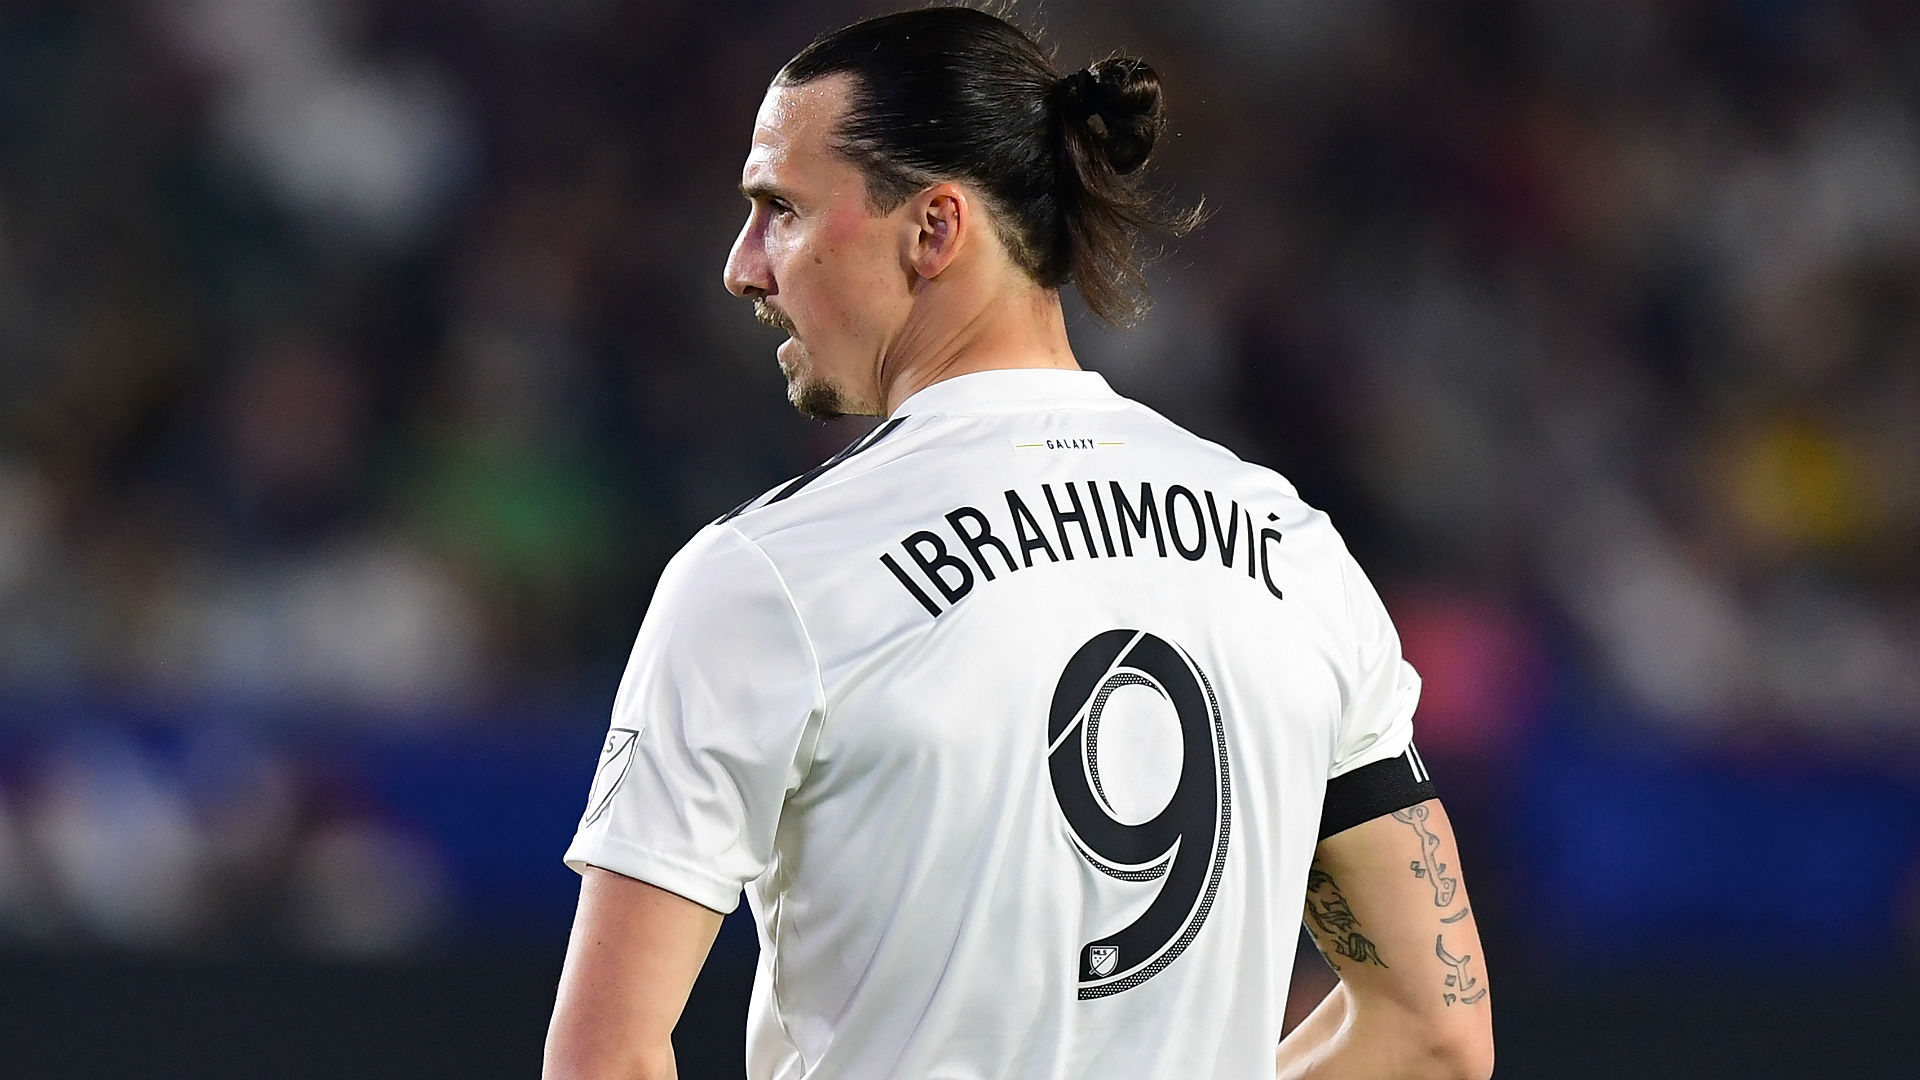 Zlatan Ibrahimovic scores 500th career goal in spectacular fashion